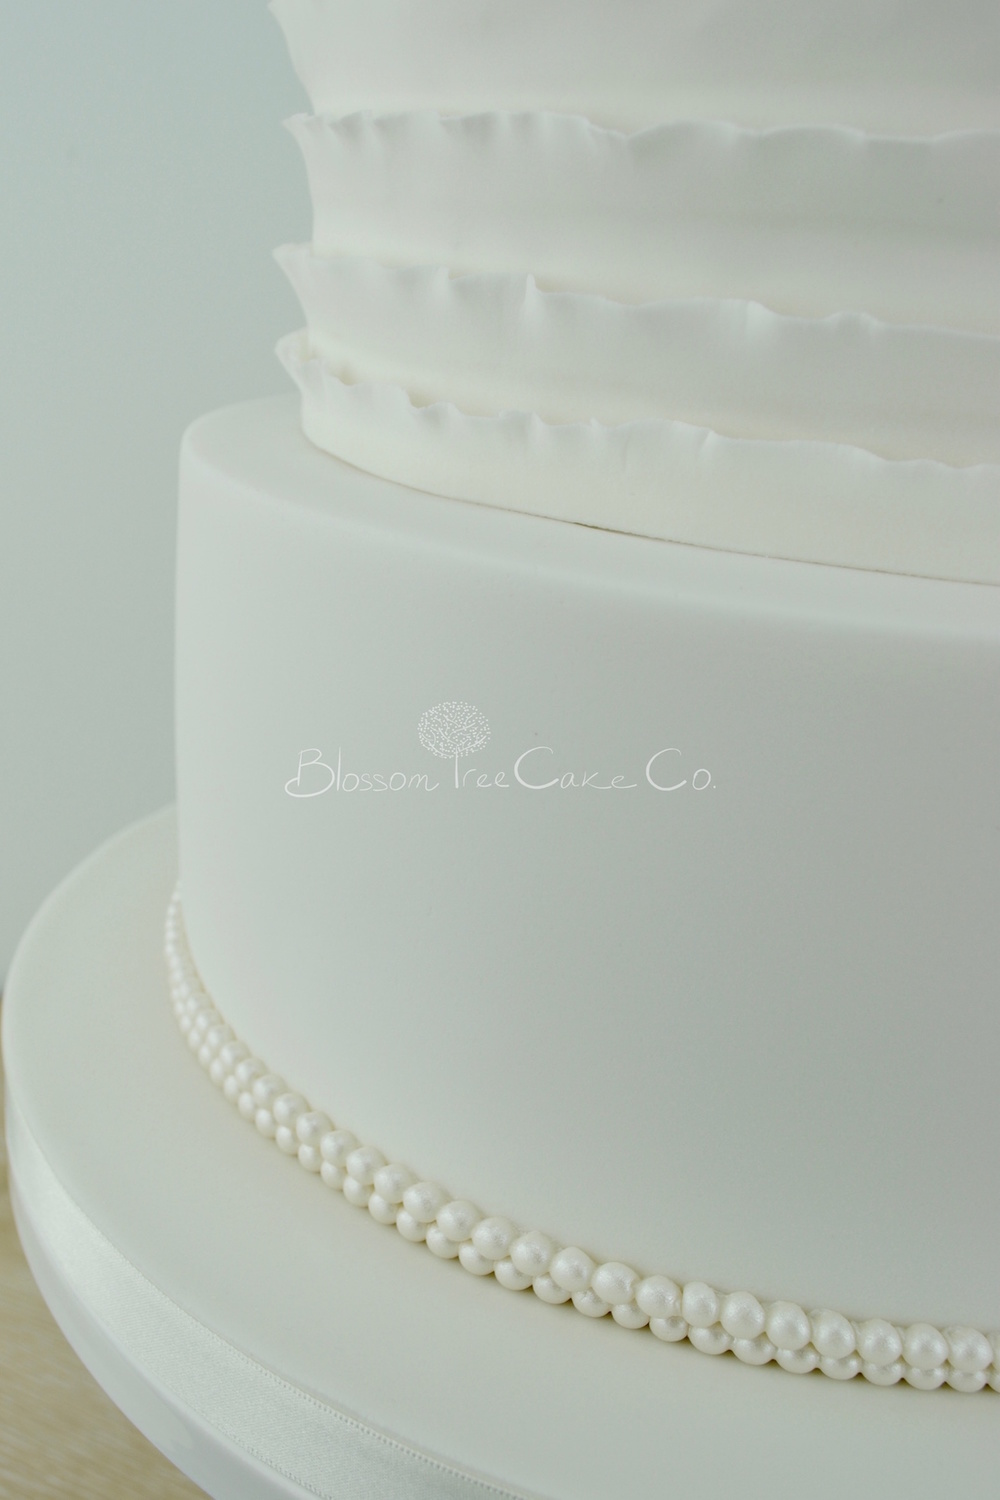 White Ruffle with White Dahlia wedding cake by Blossom Tree Cake Co Harrogate North Yorkshire detail 3.jpg